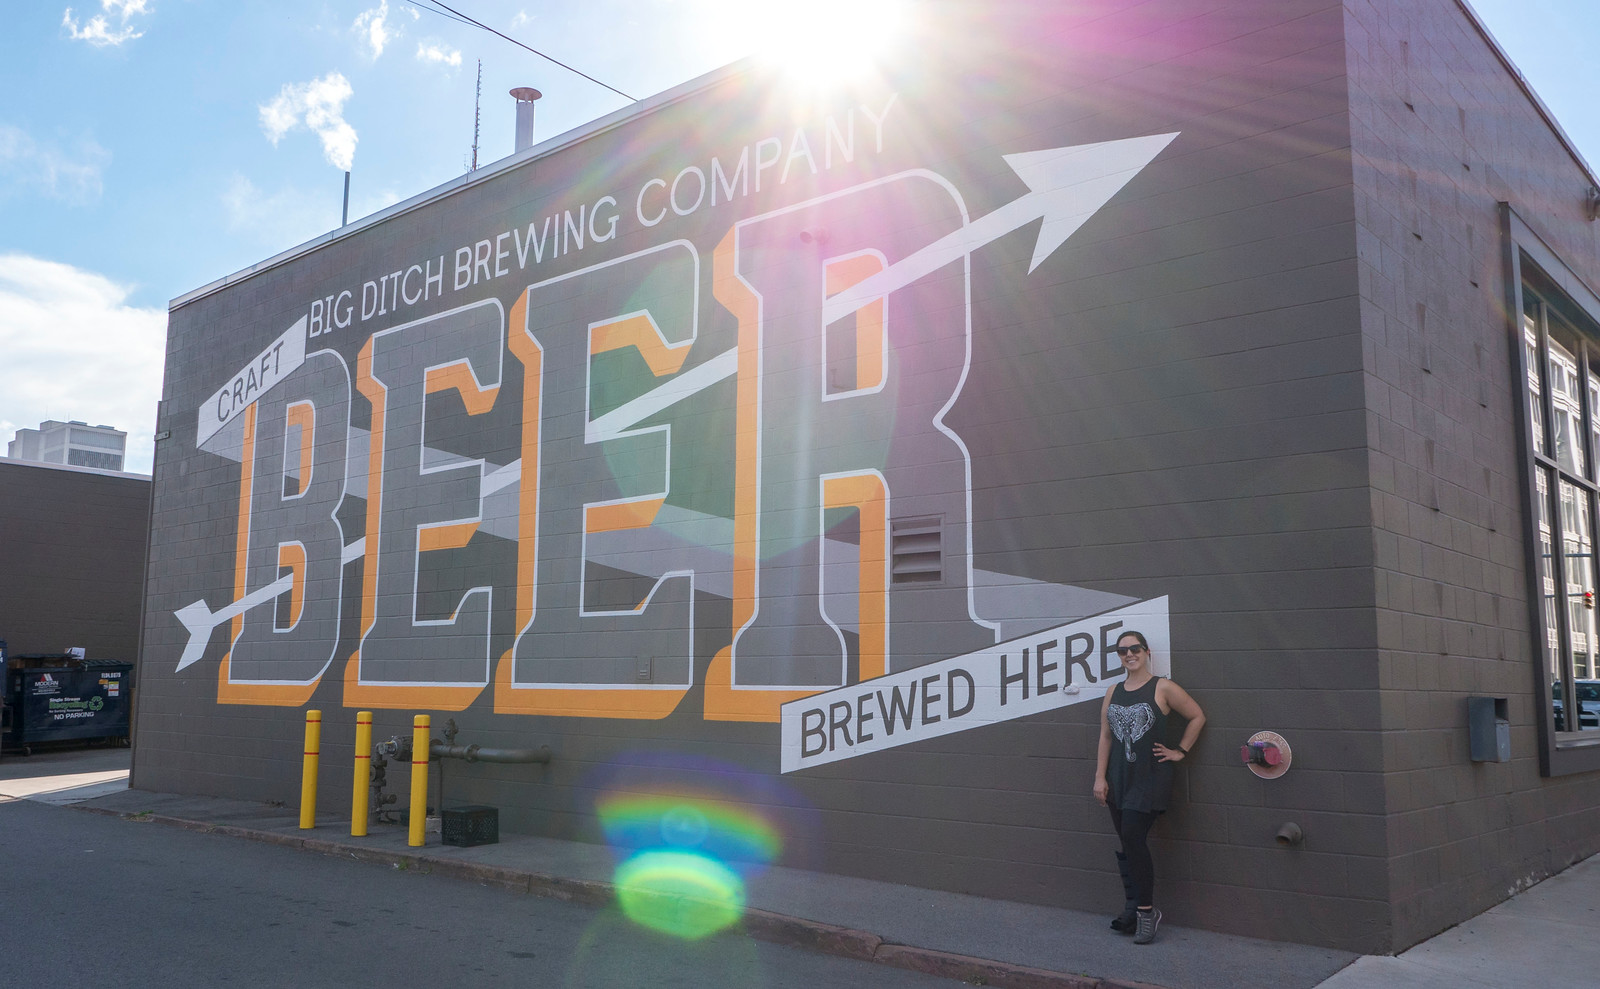 Discover Buffalo Breweries: A Guide for Beer Lovers - Big Ditch Brewing Company